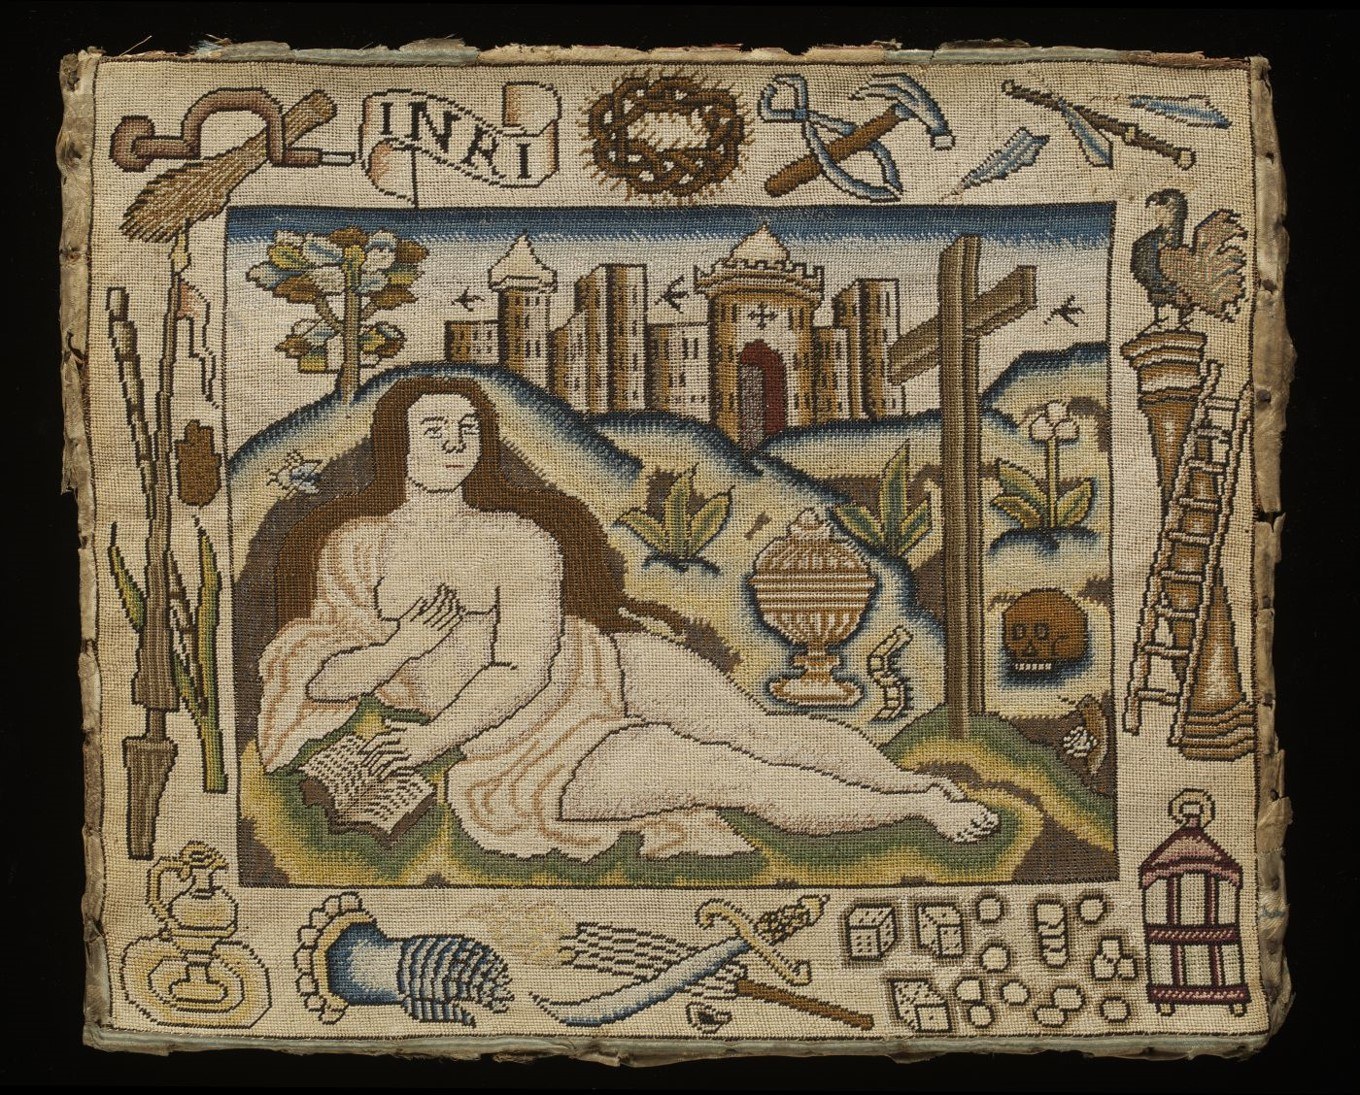 Embroidered picture of Mary Magdalene, English, 17th century. Museum no. T.57-2012 © Victoria and Albert Museum, London